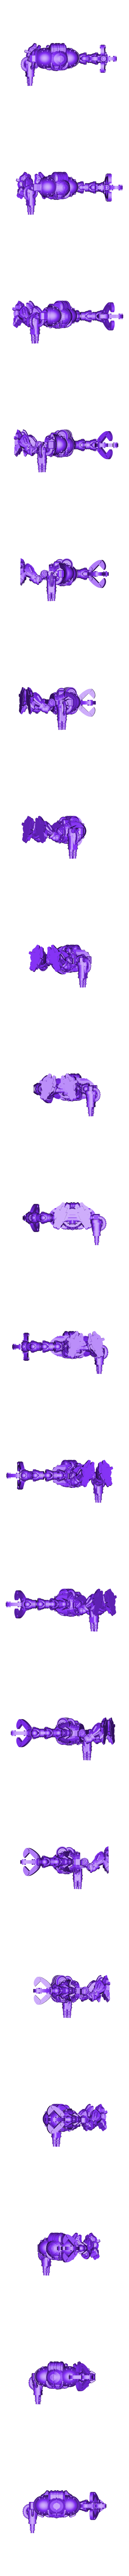 Helbrute_Example_1.stl Download free STL file Modular Mech Helbrute Expansion • 3D printing object, mrhers2